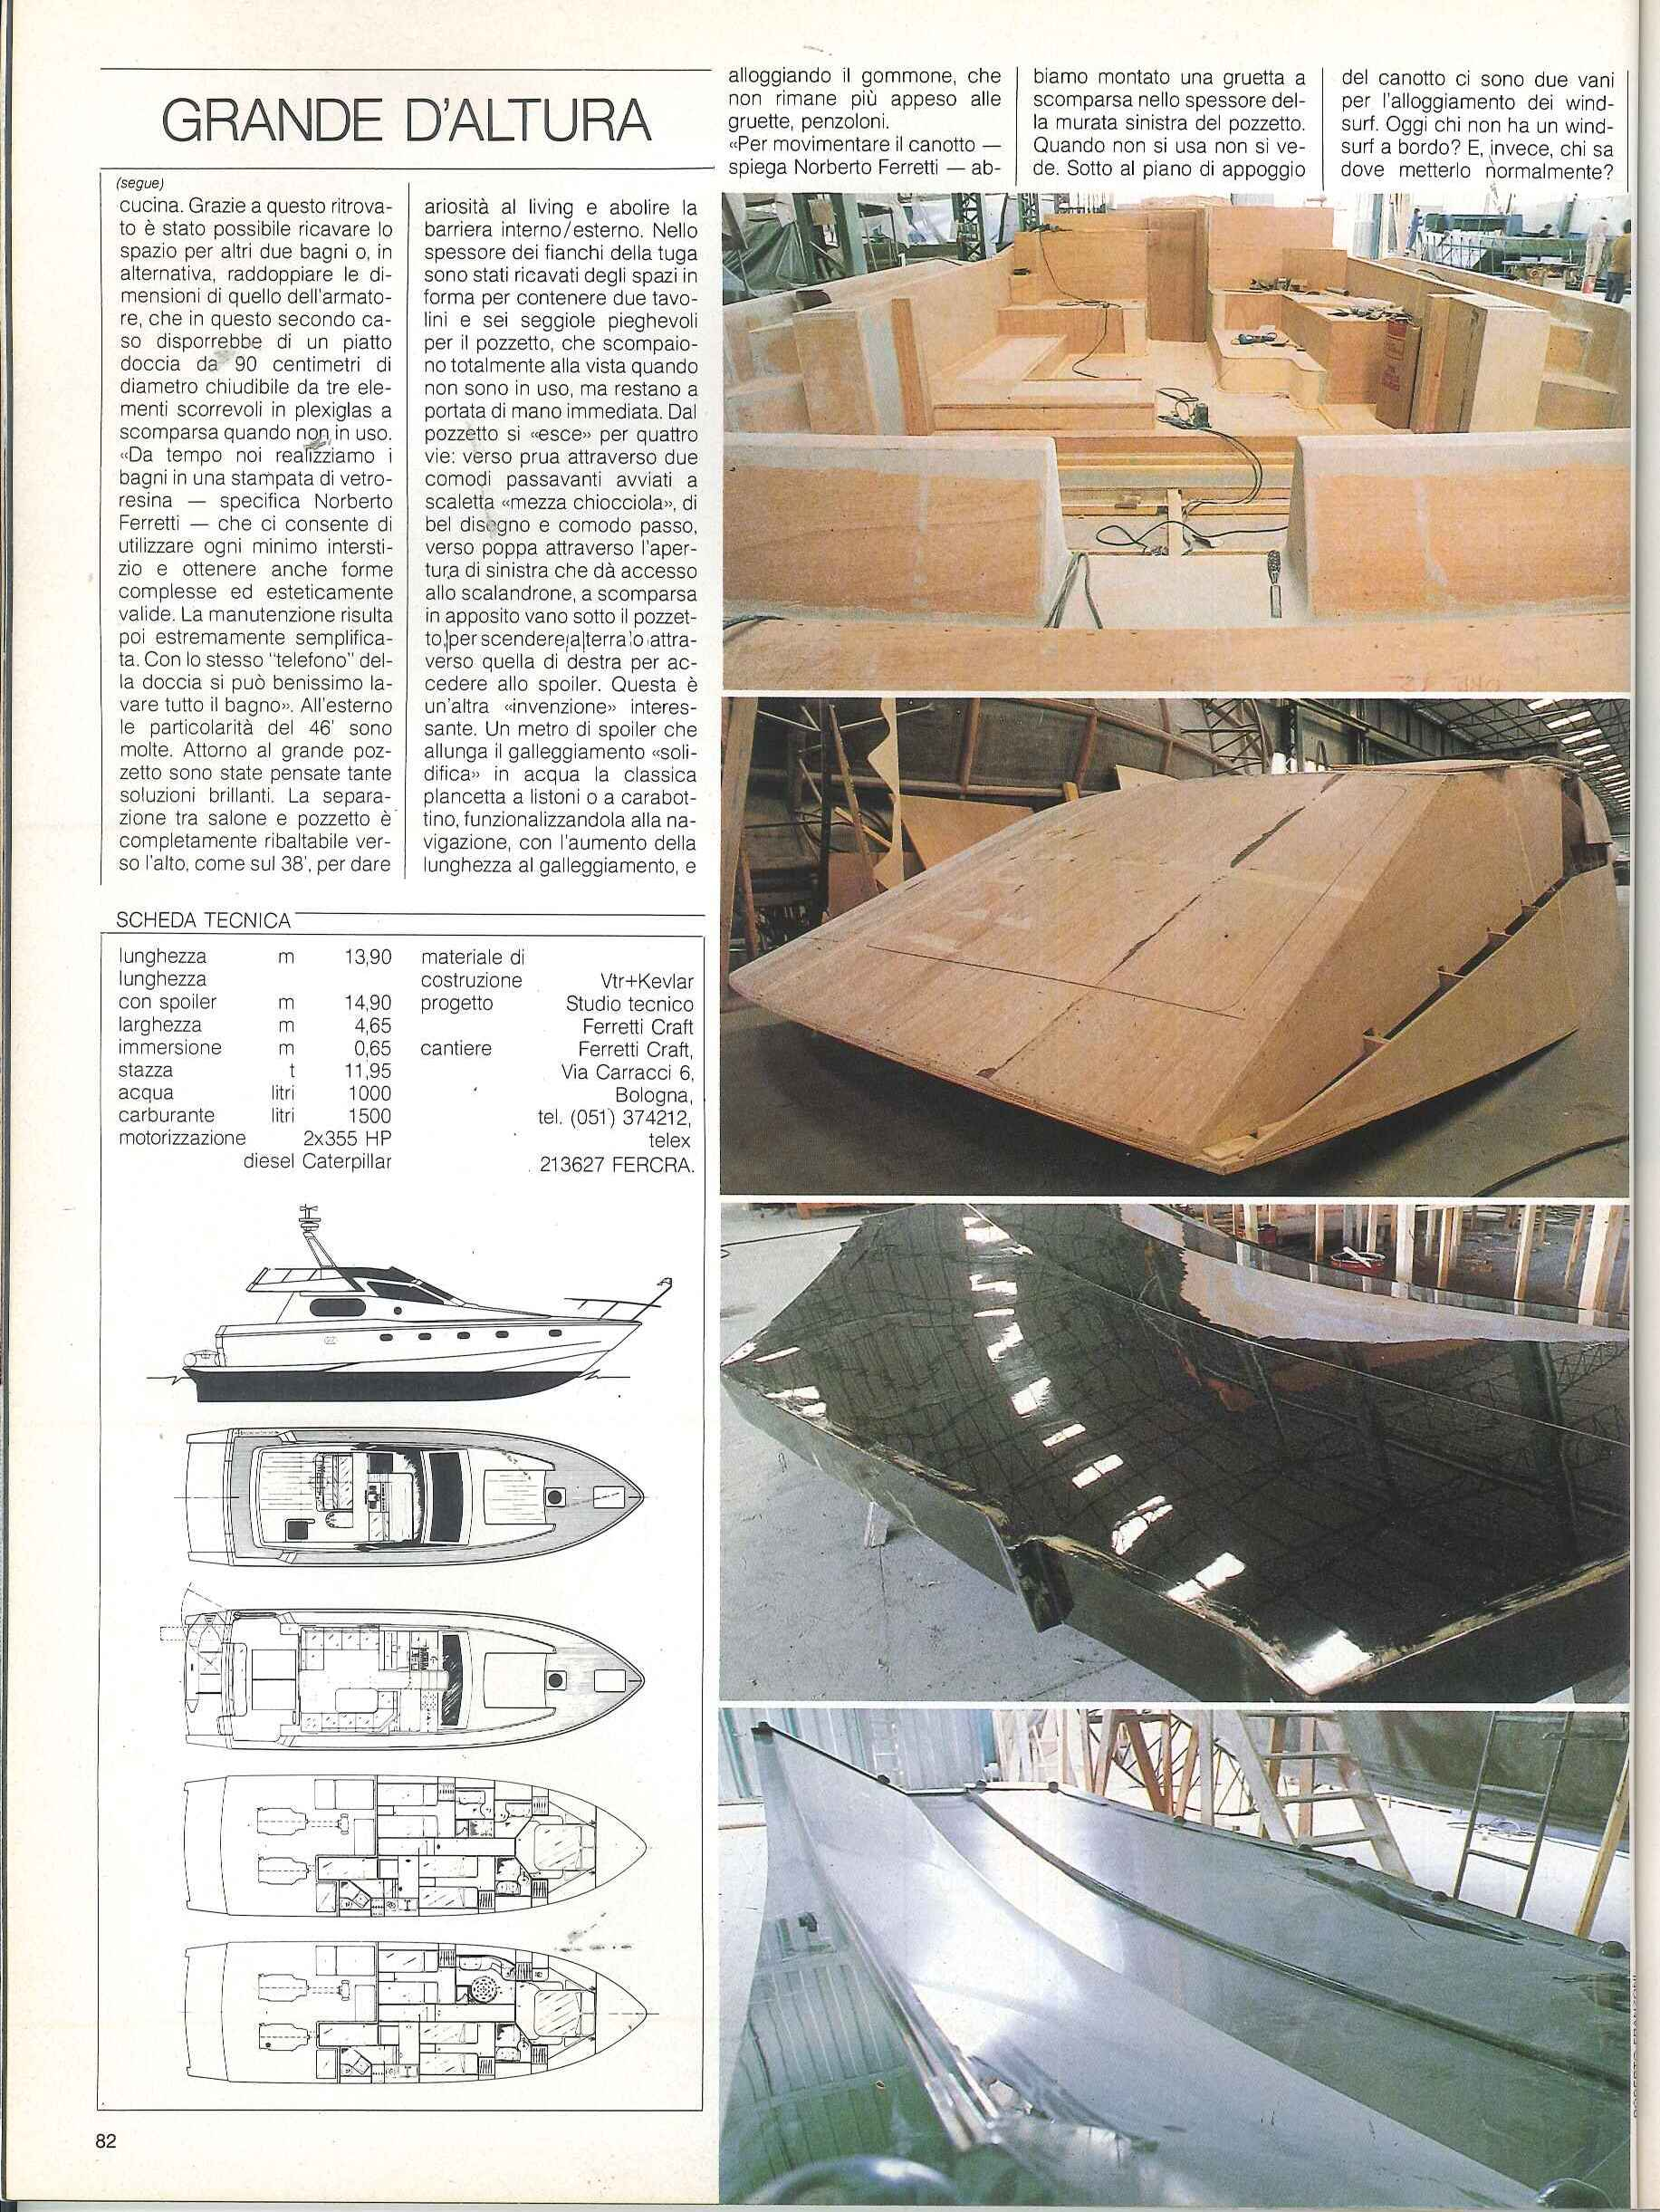 1984 06 PRESS FERRETTI CRAFT Uomo Mare 78 (03).jpg